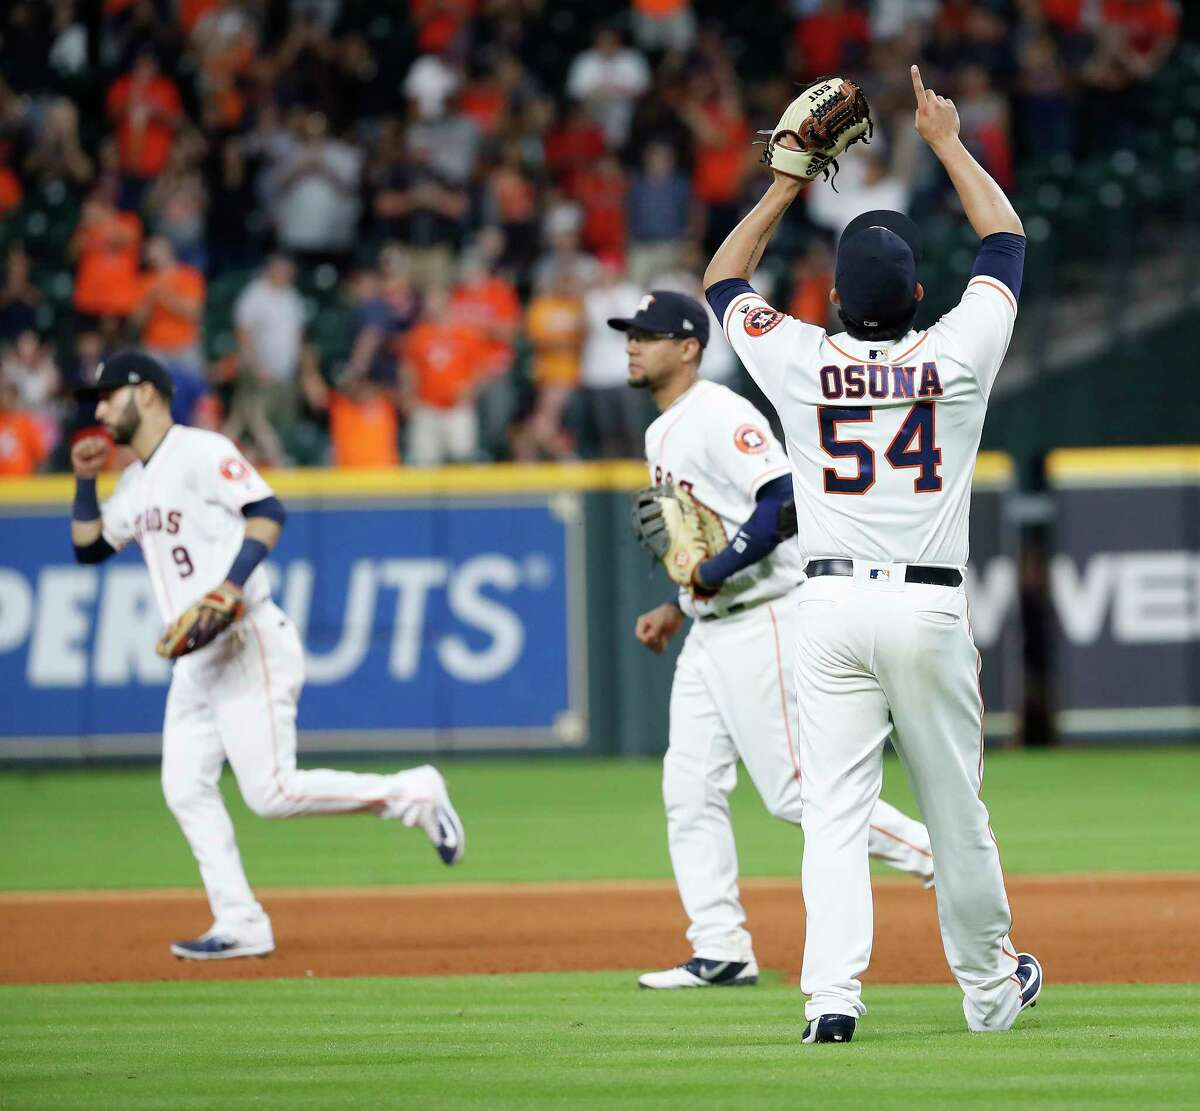 Houston Astros relief pitcher Roberto Osuna (54) celebrates the Astros 4-2 win over the Los Angeles Angels after the ninth inning of an MLB baseball game at Minute Maid Park, Sunday, September 2, 2018, in Houston.